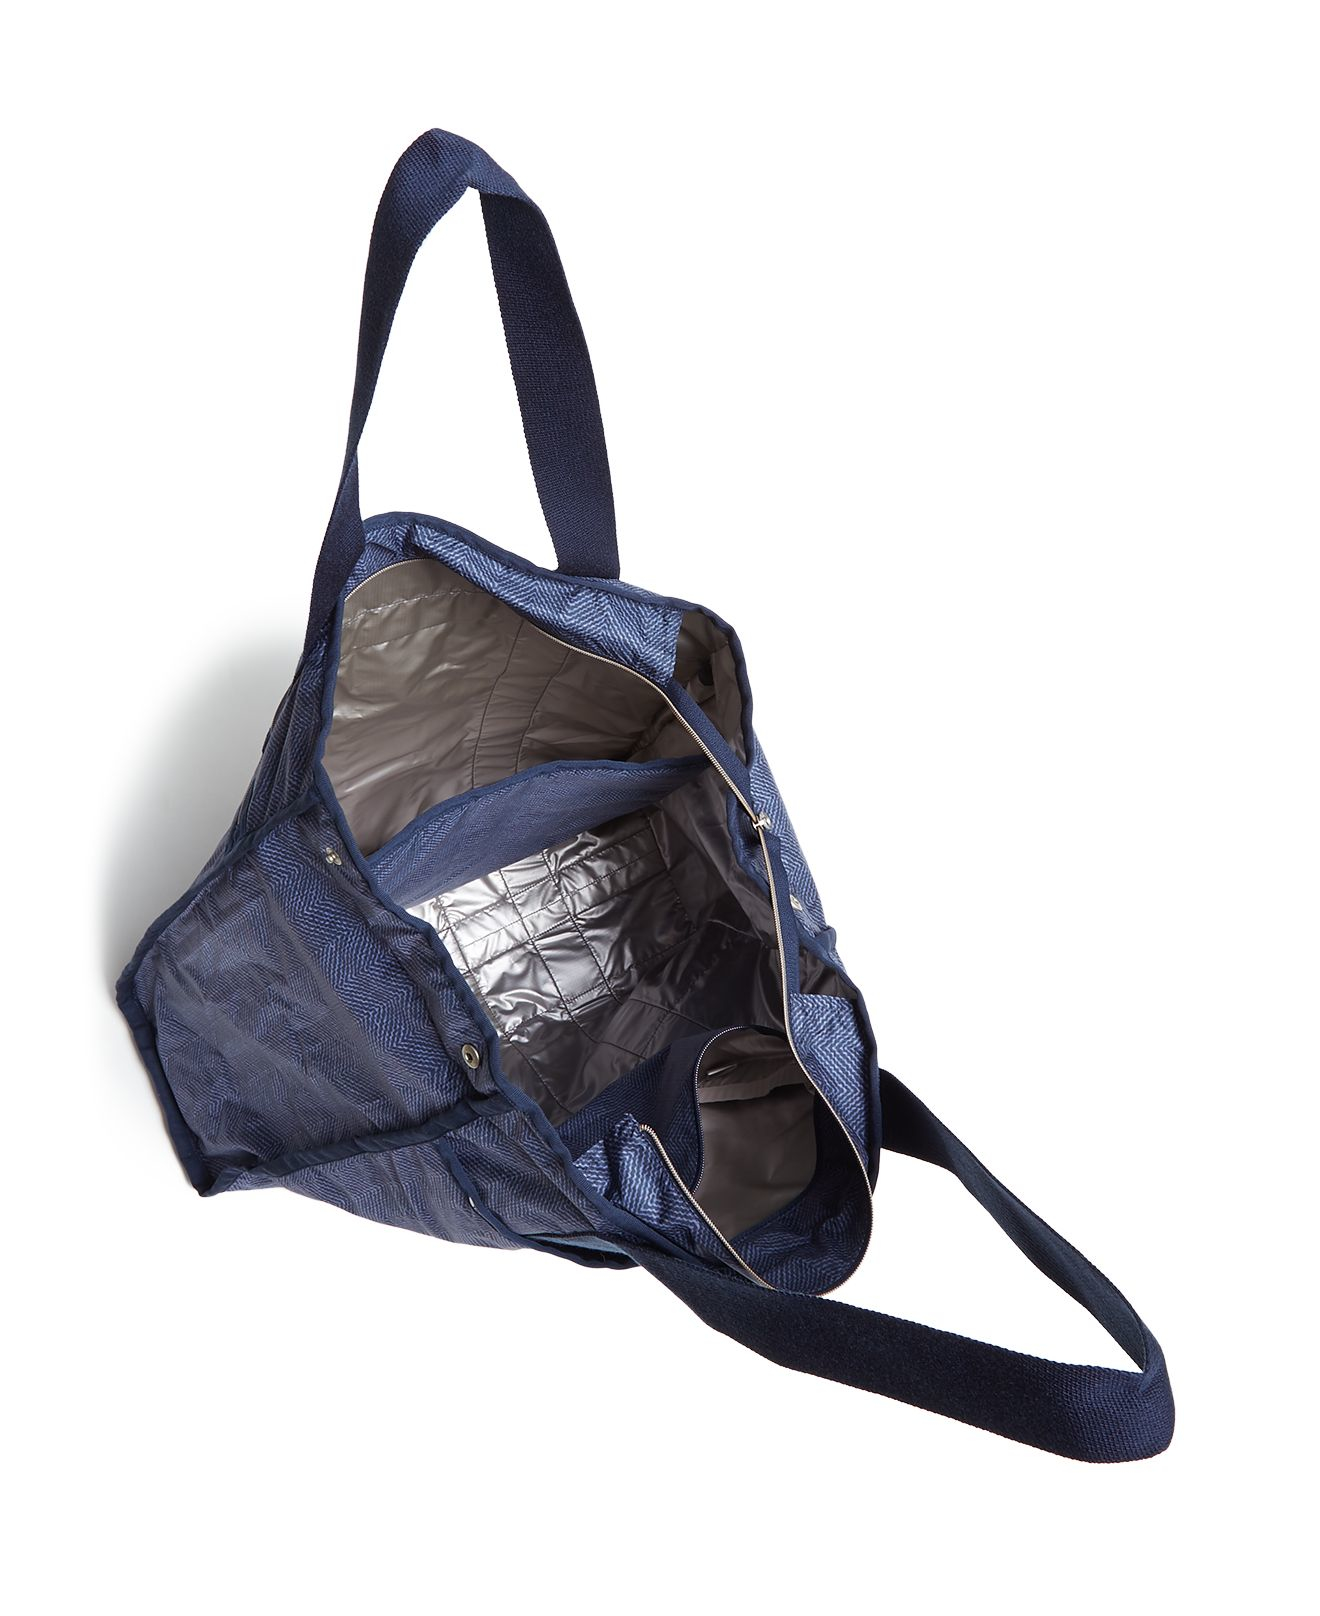 LeSportsac Synthetic Printed Everyday Tote in Blue